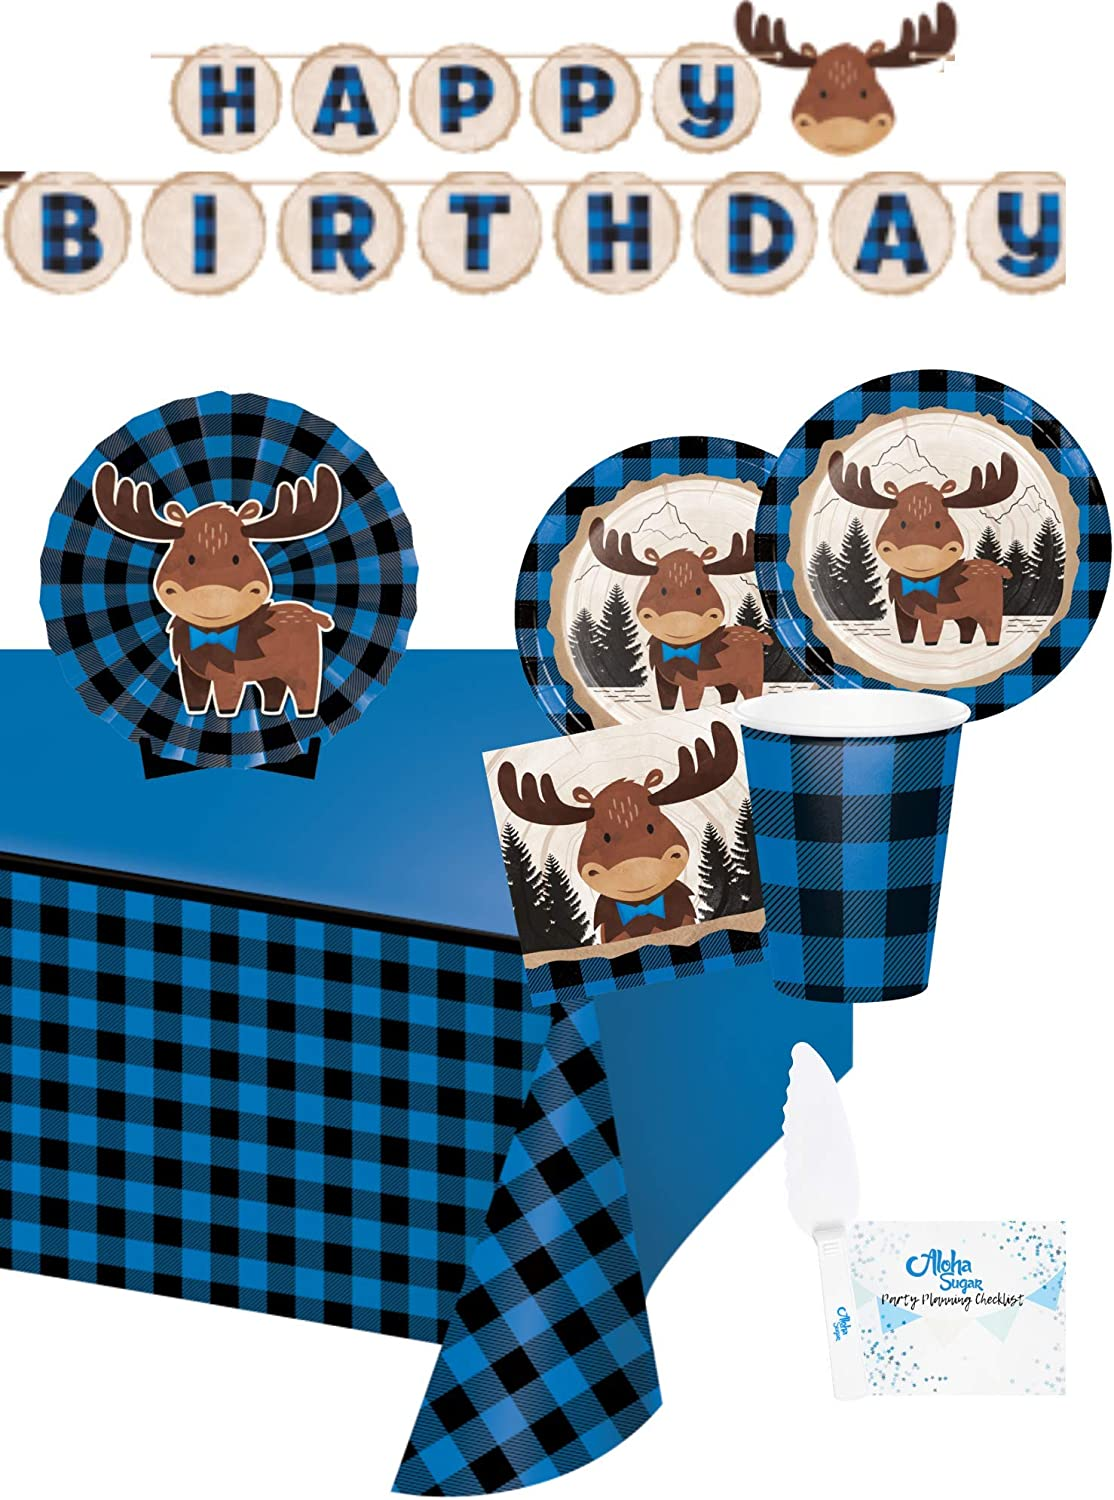 Moose Party Supplies and Decorations Includes Moose Birthday Banner Buffalo Plaid Moose Party Plates and Napkins Cups for 16 People Perfect Lumberjack Birthday Party Decorations and Lumberjack Birthday Party Supplies! Tablecloth and Centerpiece